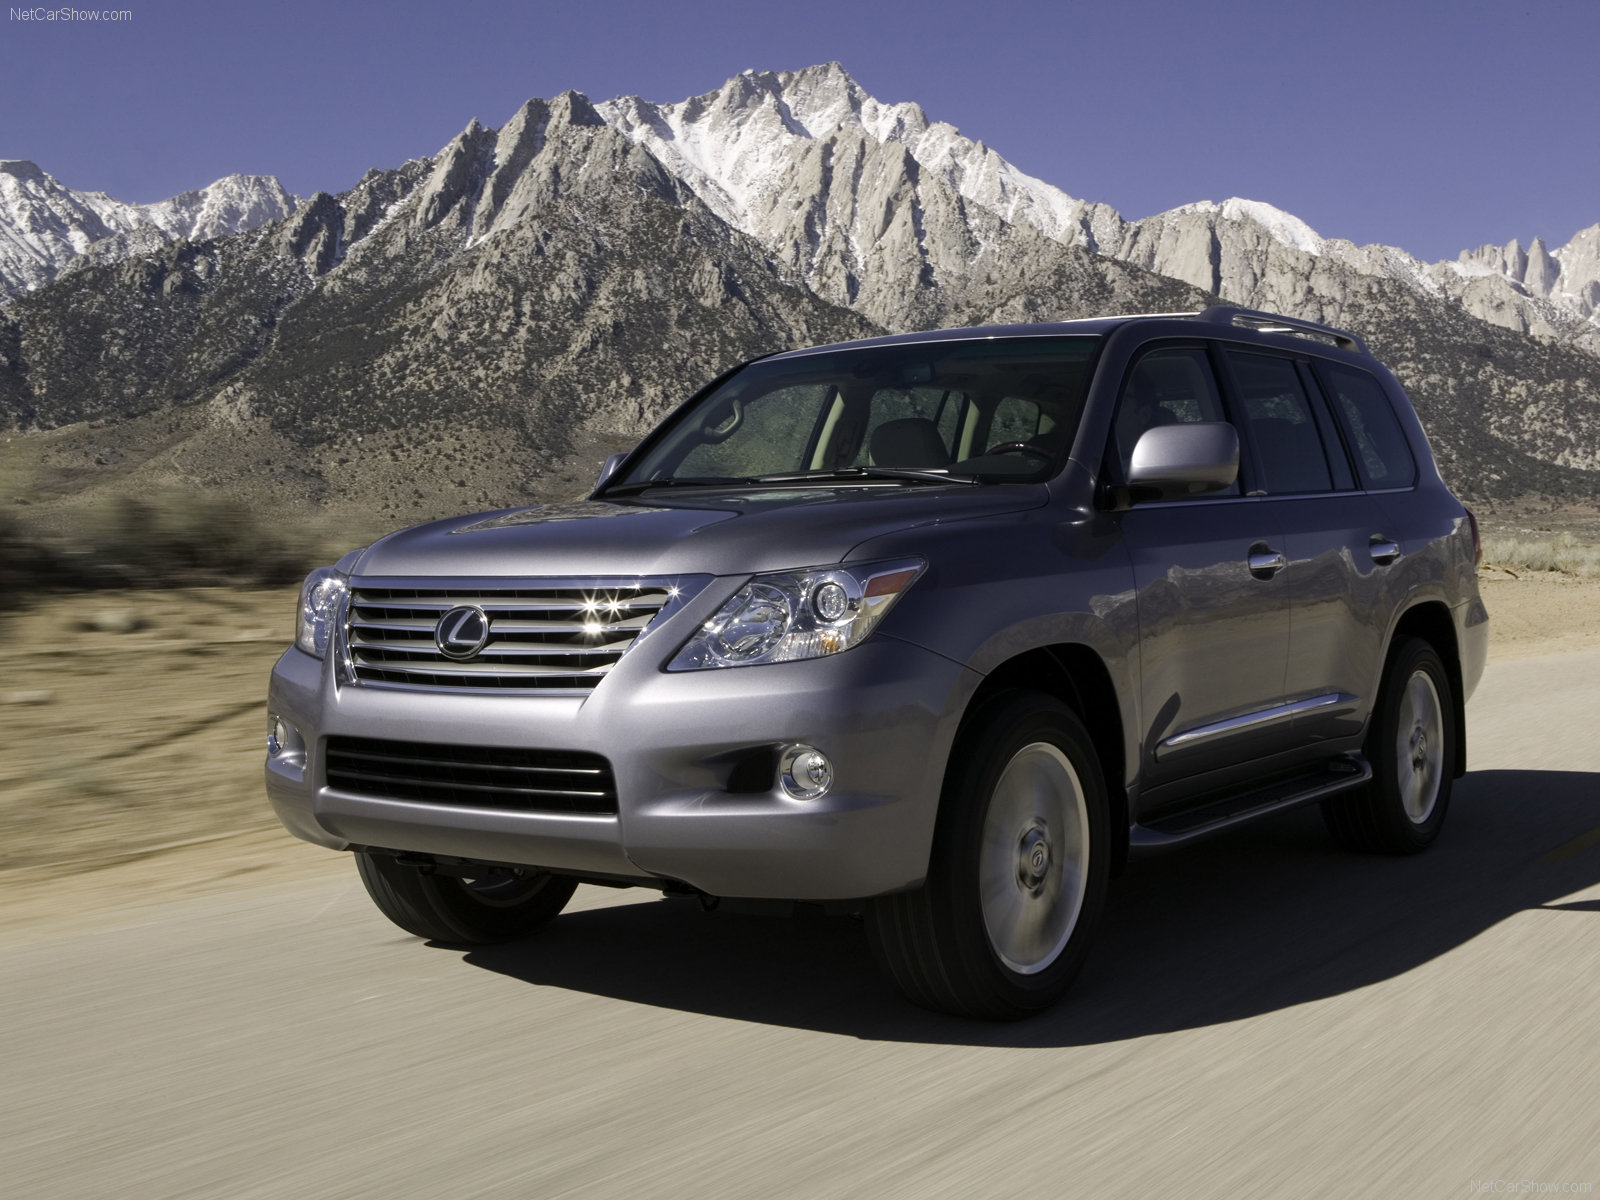 Lexus LX 570 photo 42855